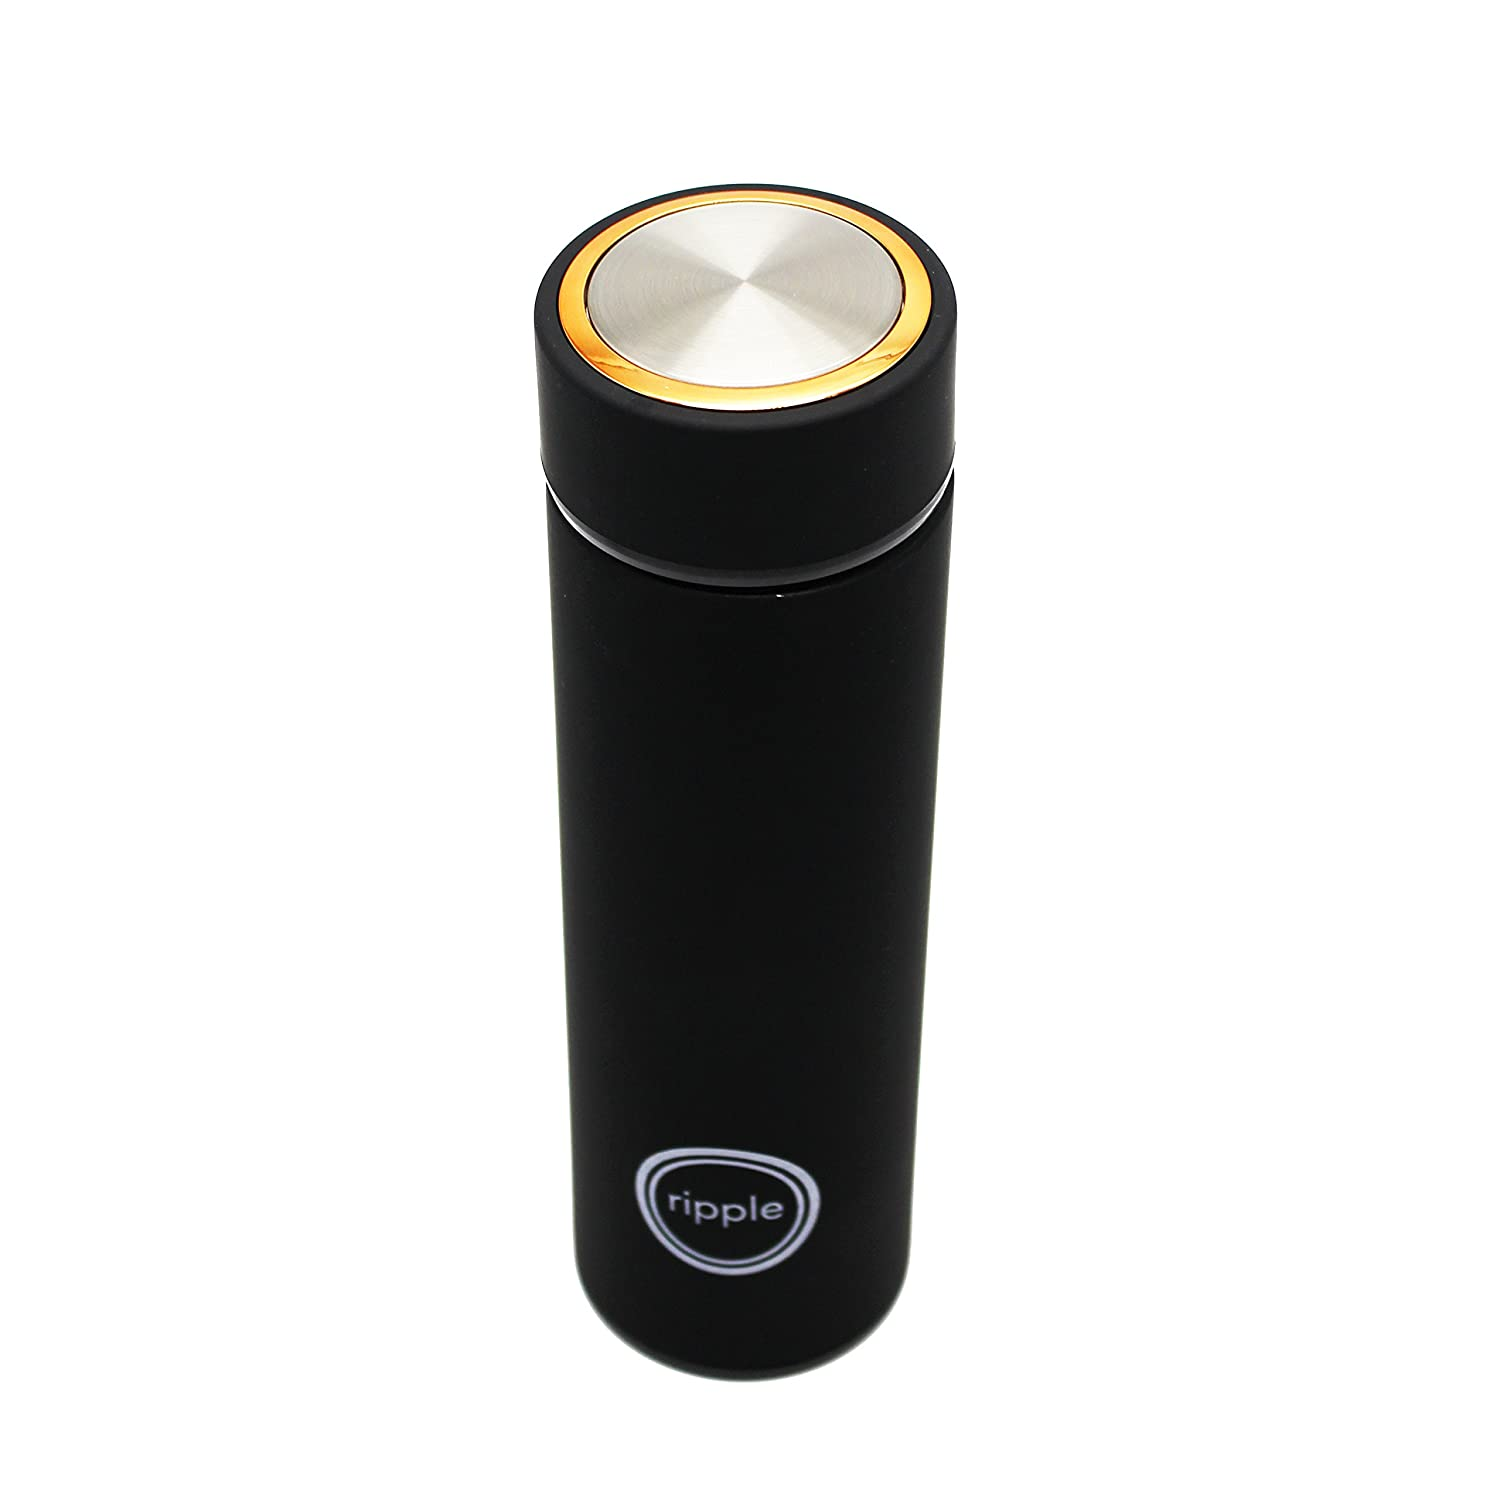 Dancers and Travelers Sleek and Stylish 17 oz Double Wall Insulated Stainless Steel Ripple Water Bottle Leak-Proof and BPA-Free Athletes Best Bottle for Backpackers Great for Commuting.